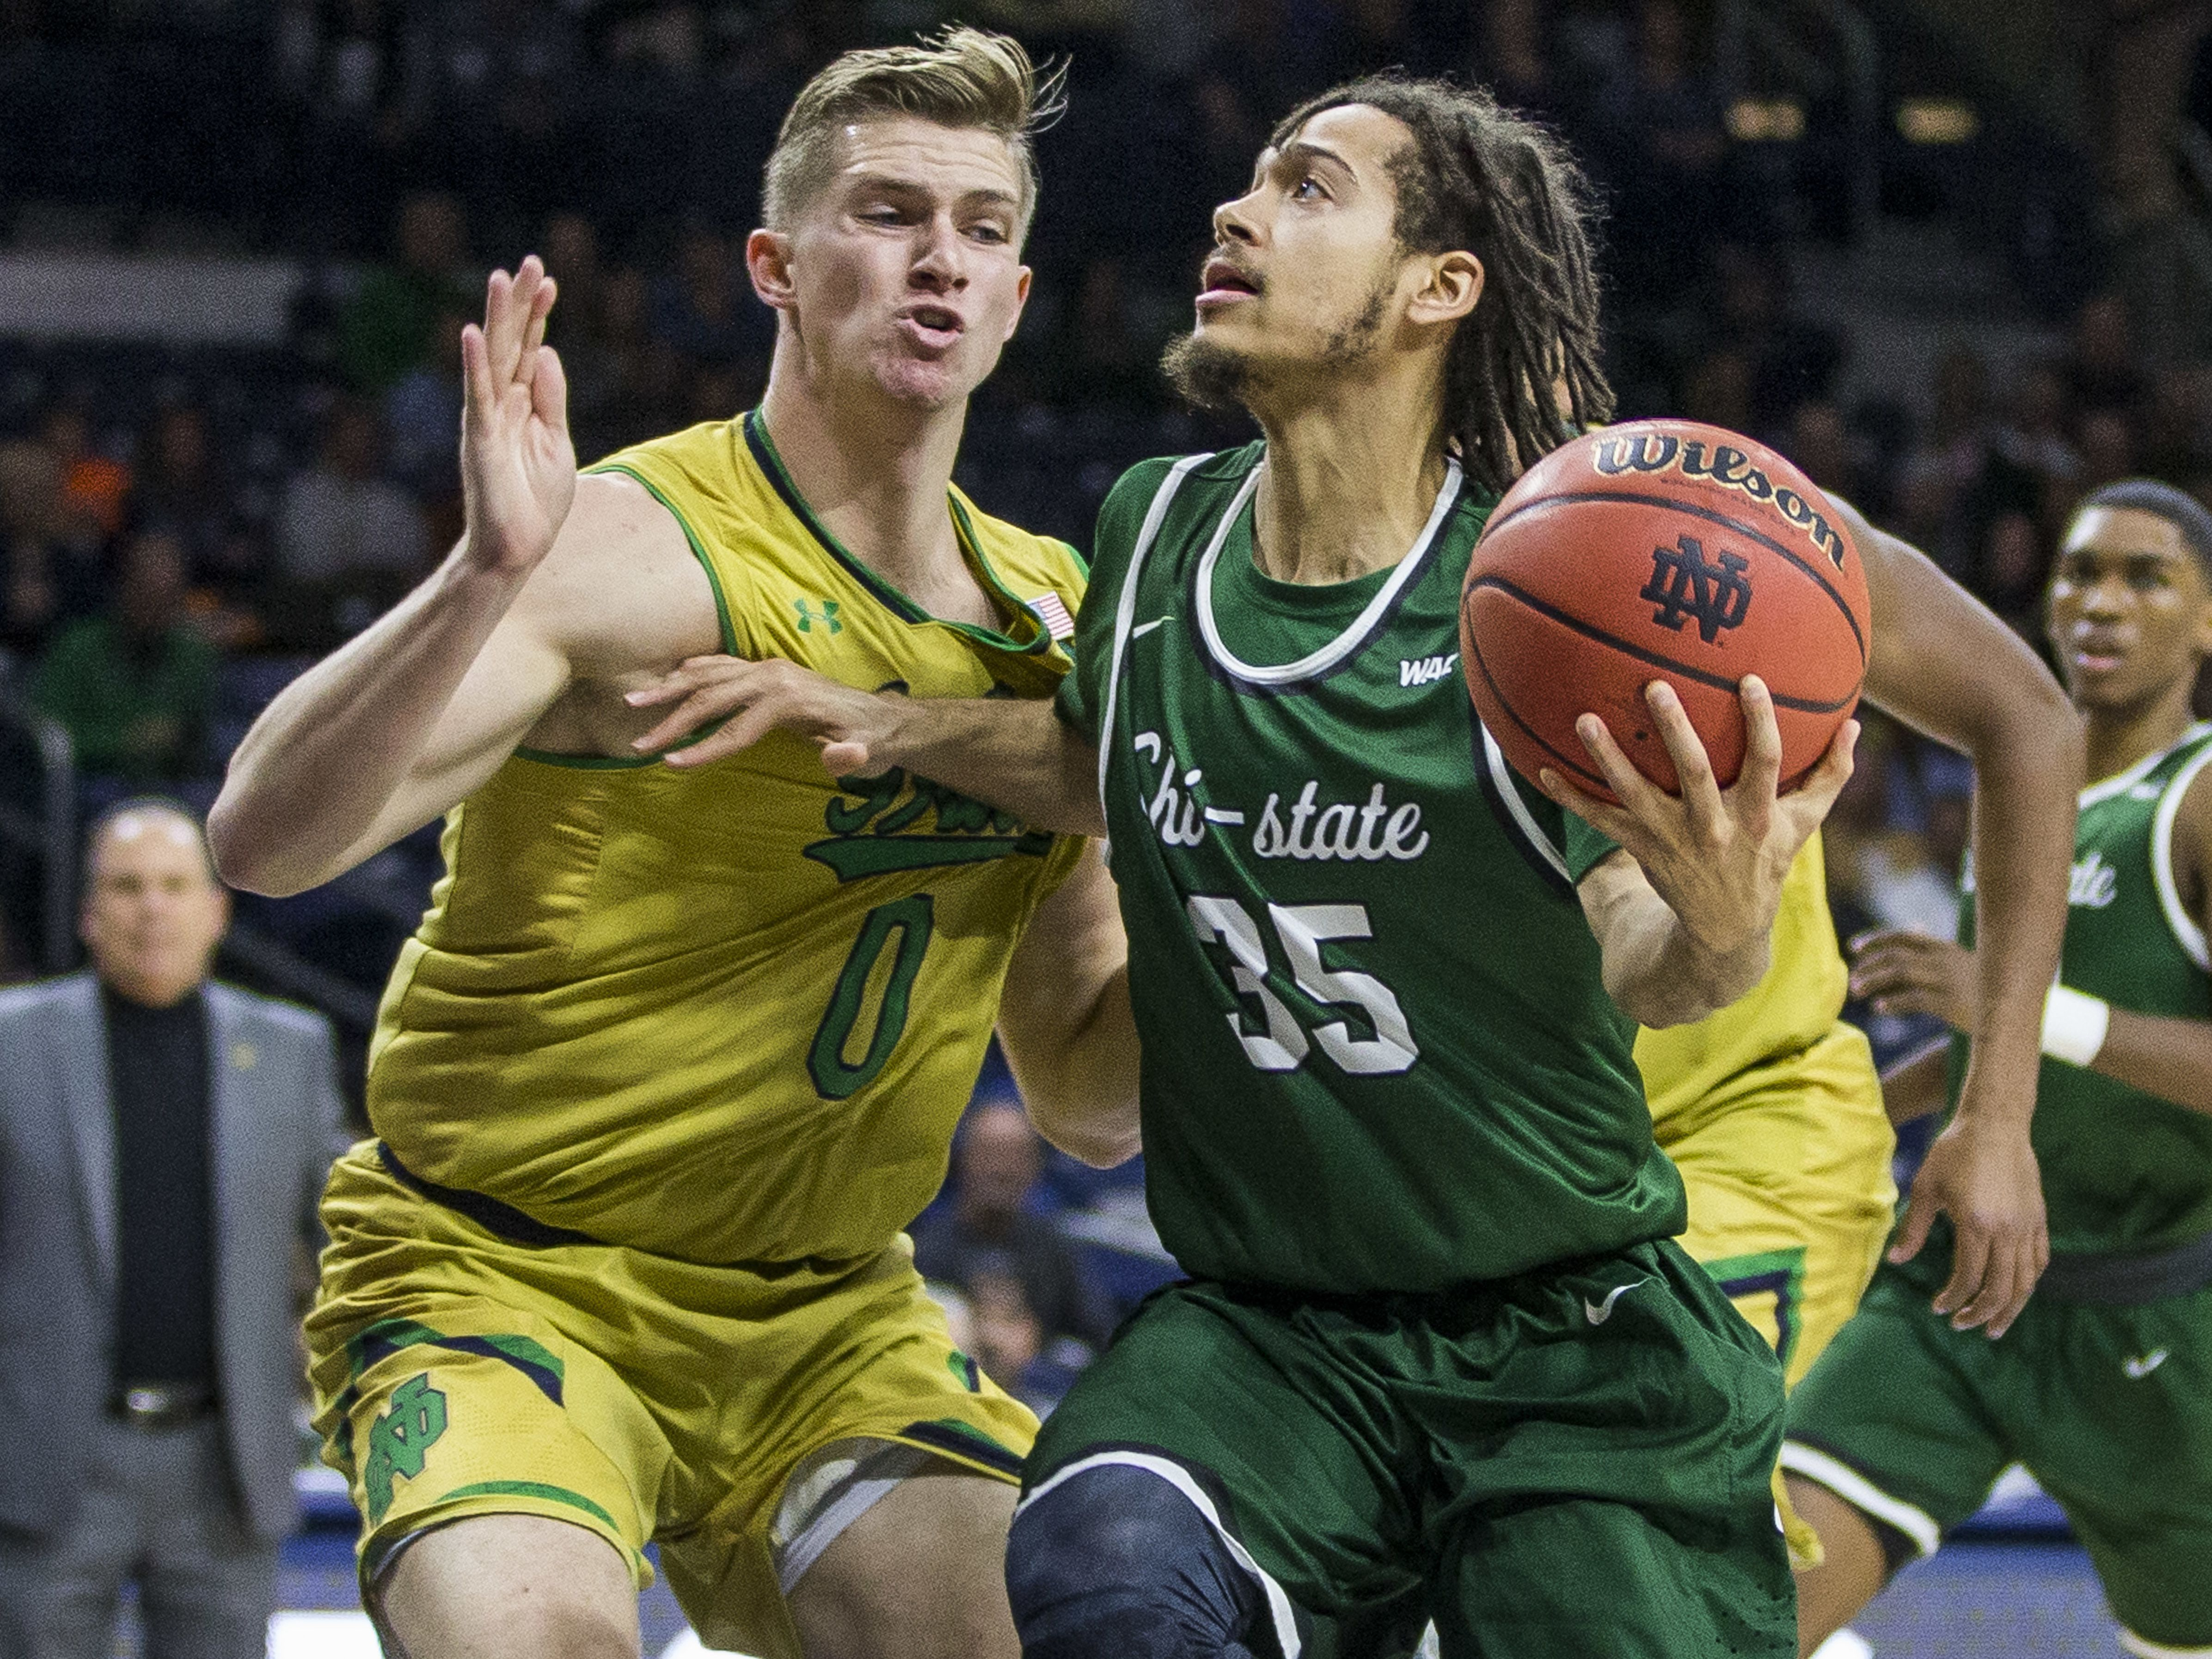 Chicago State's Rob Shaw (35) drives by Notre Dame's Rex Pflueger (0) during the first half of an NCAA college basketball game Thursday, Nov. 16, 2017, in South Bend, Ind. (AP Photo/Robert Franklin)